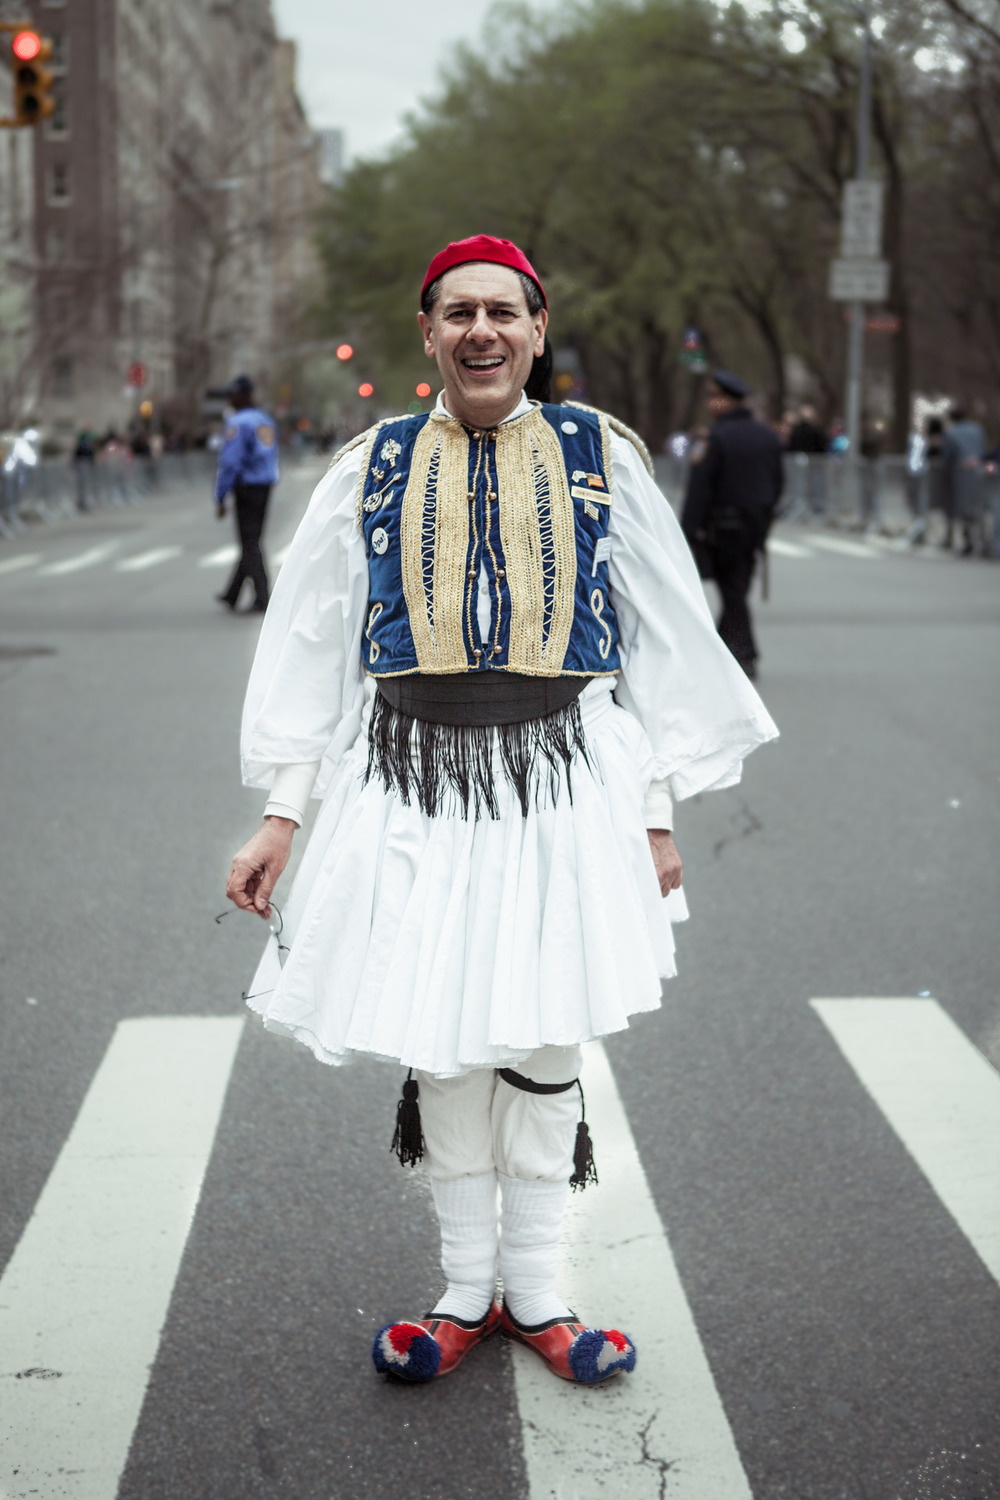 expatriate greek, in his everyday outfit © MEATSAUCE 2012   ALL RIGHTS RESERVED